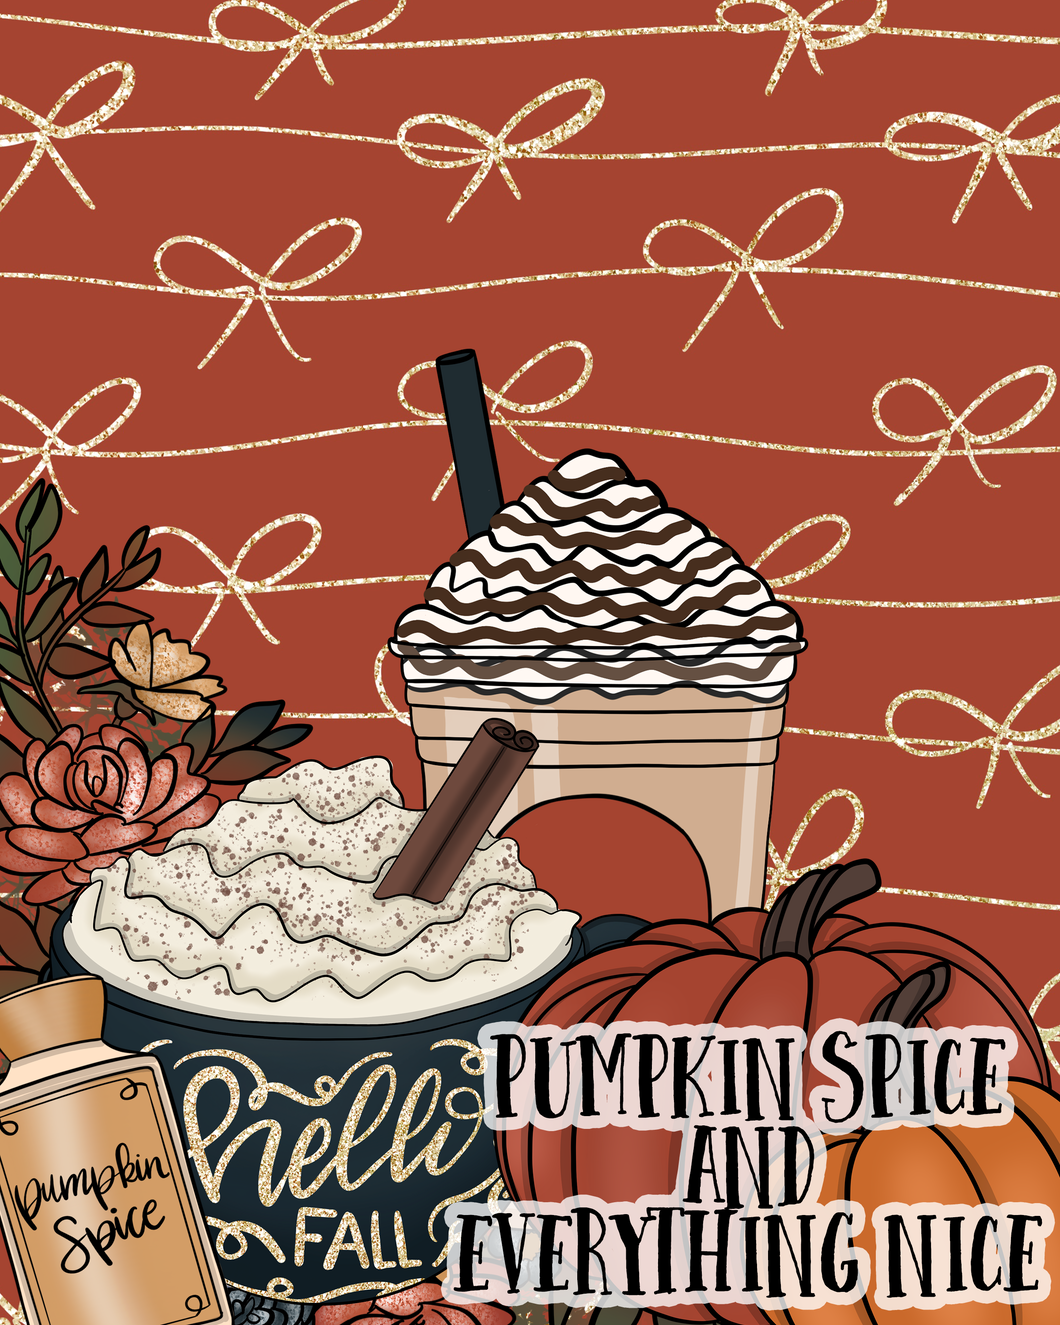 September Box - Pumpkin Spice  4x6 Postcard